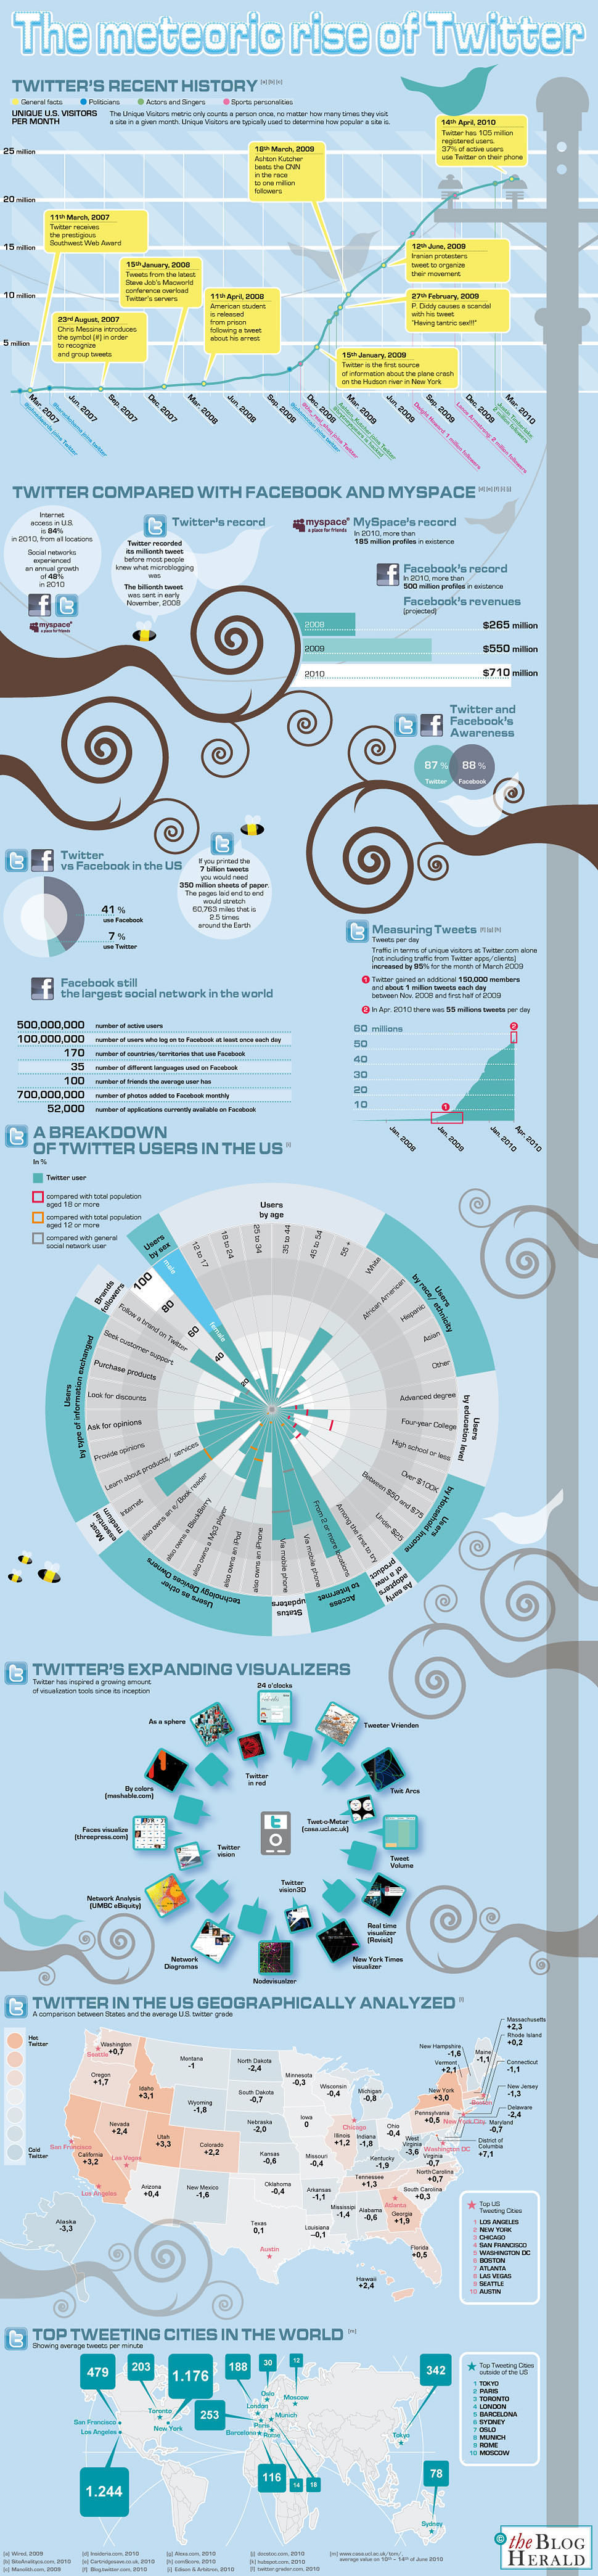 Twitter's Meteoric Rise Compared to Facebook [Infographic]